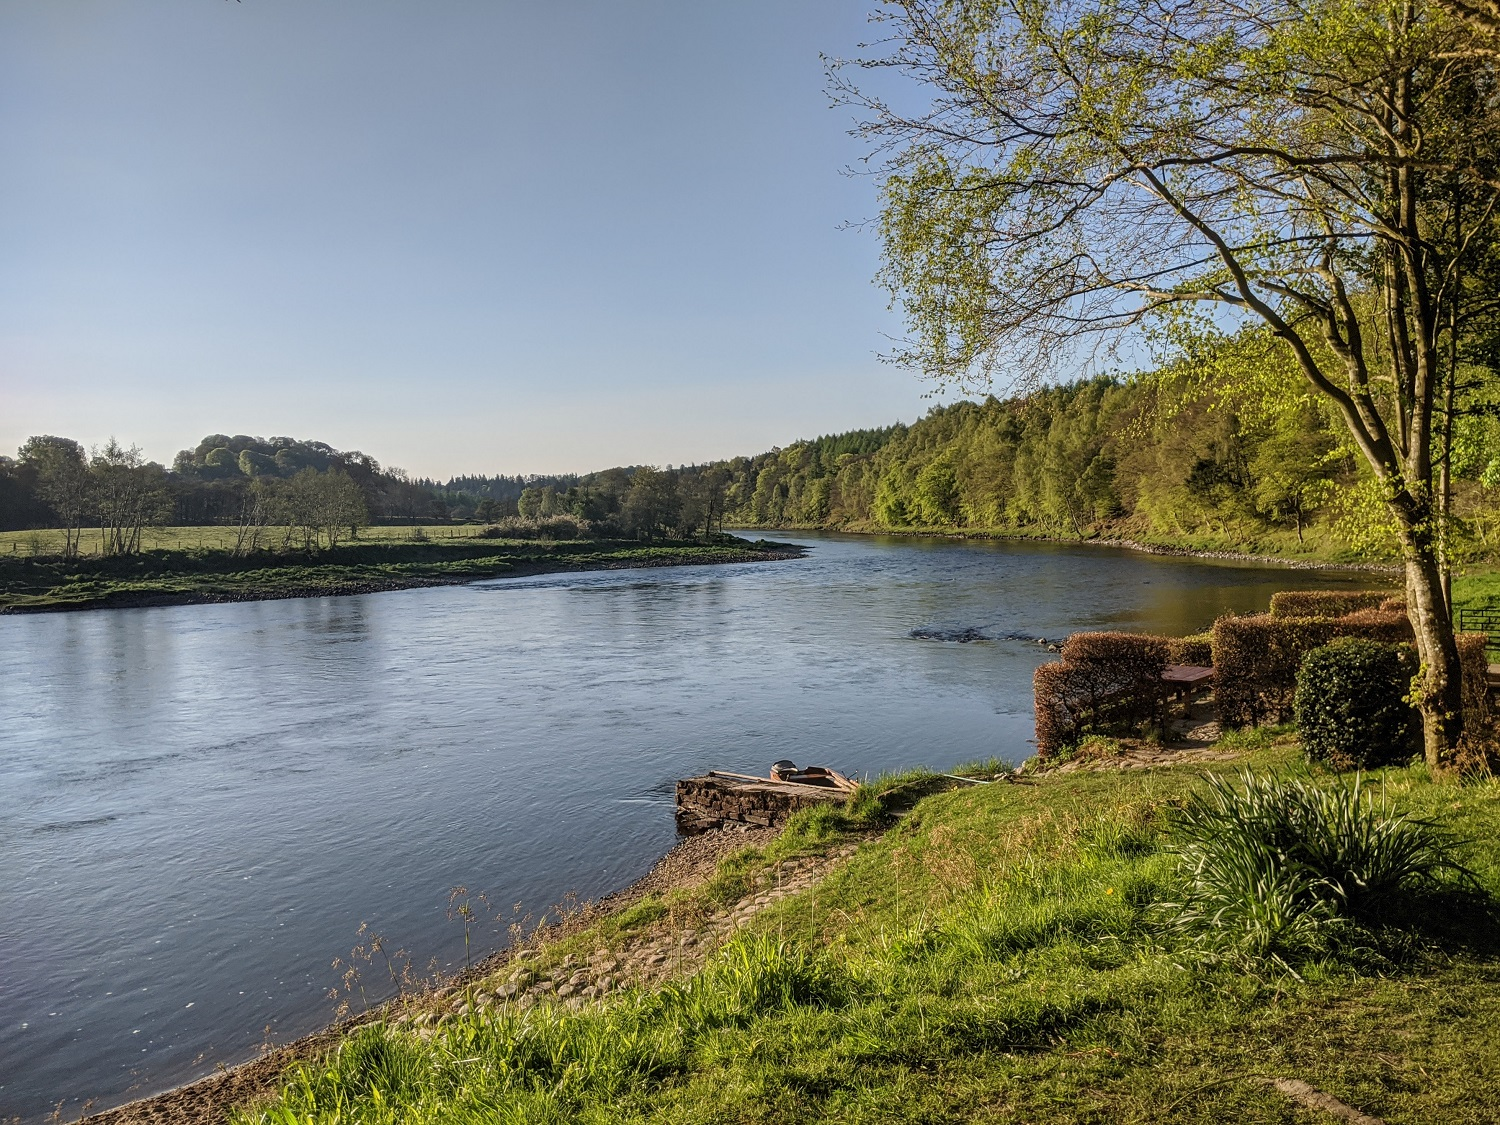 Riverbank in Perthshire